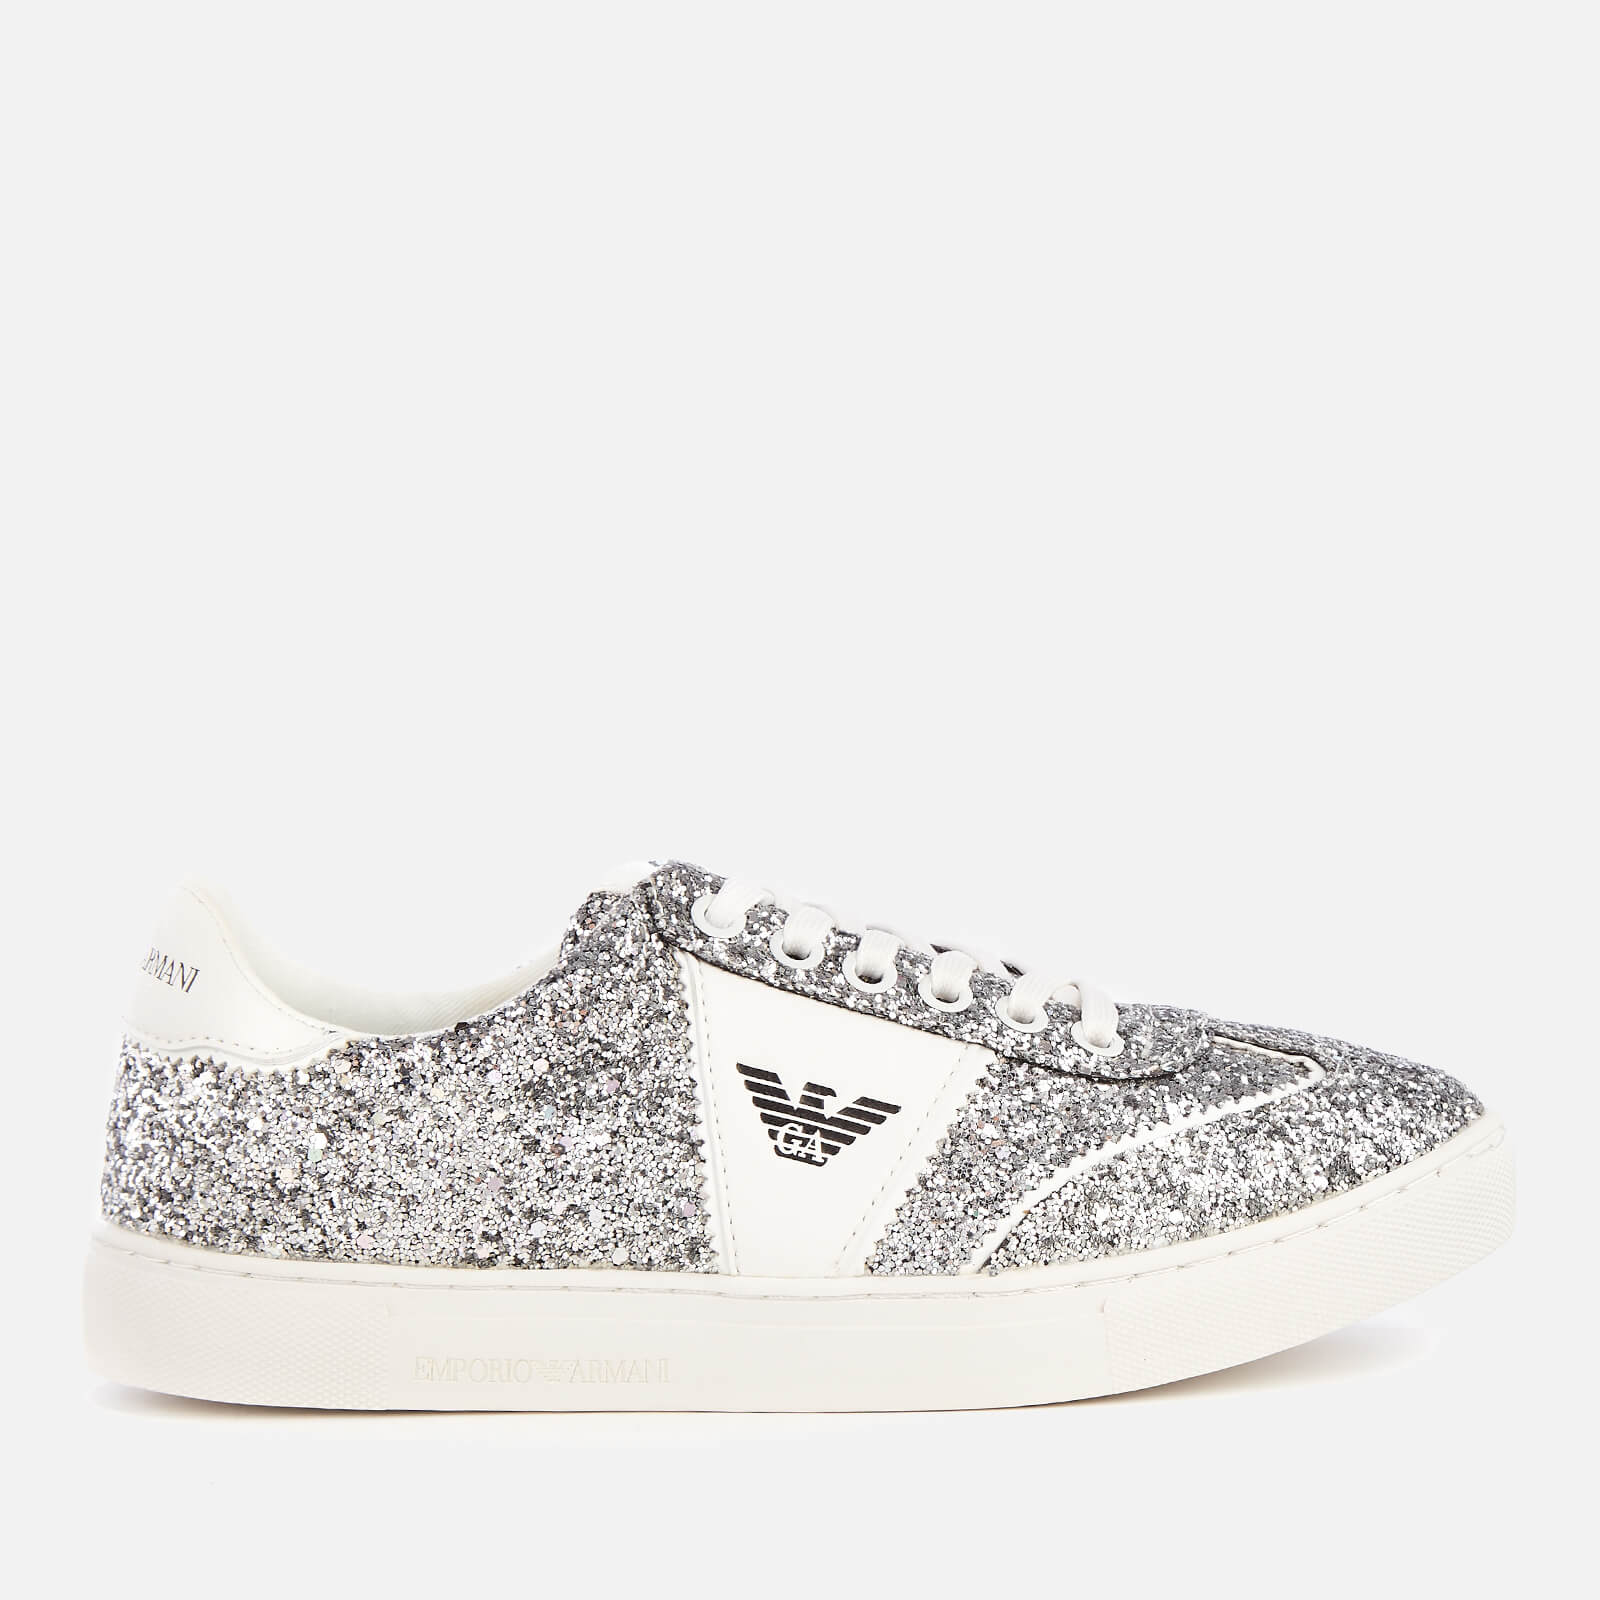 Emporio Armani Women's Biz Glitter Low Top Trainers - Silver/White - UK 7 - Silver/White